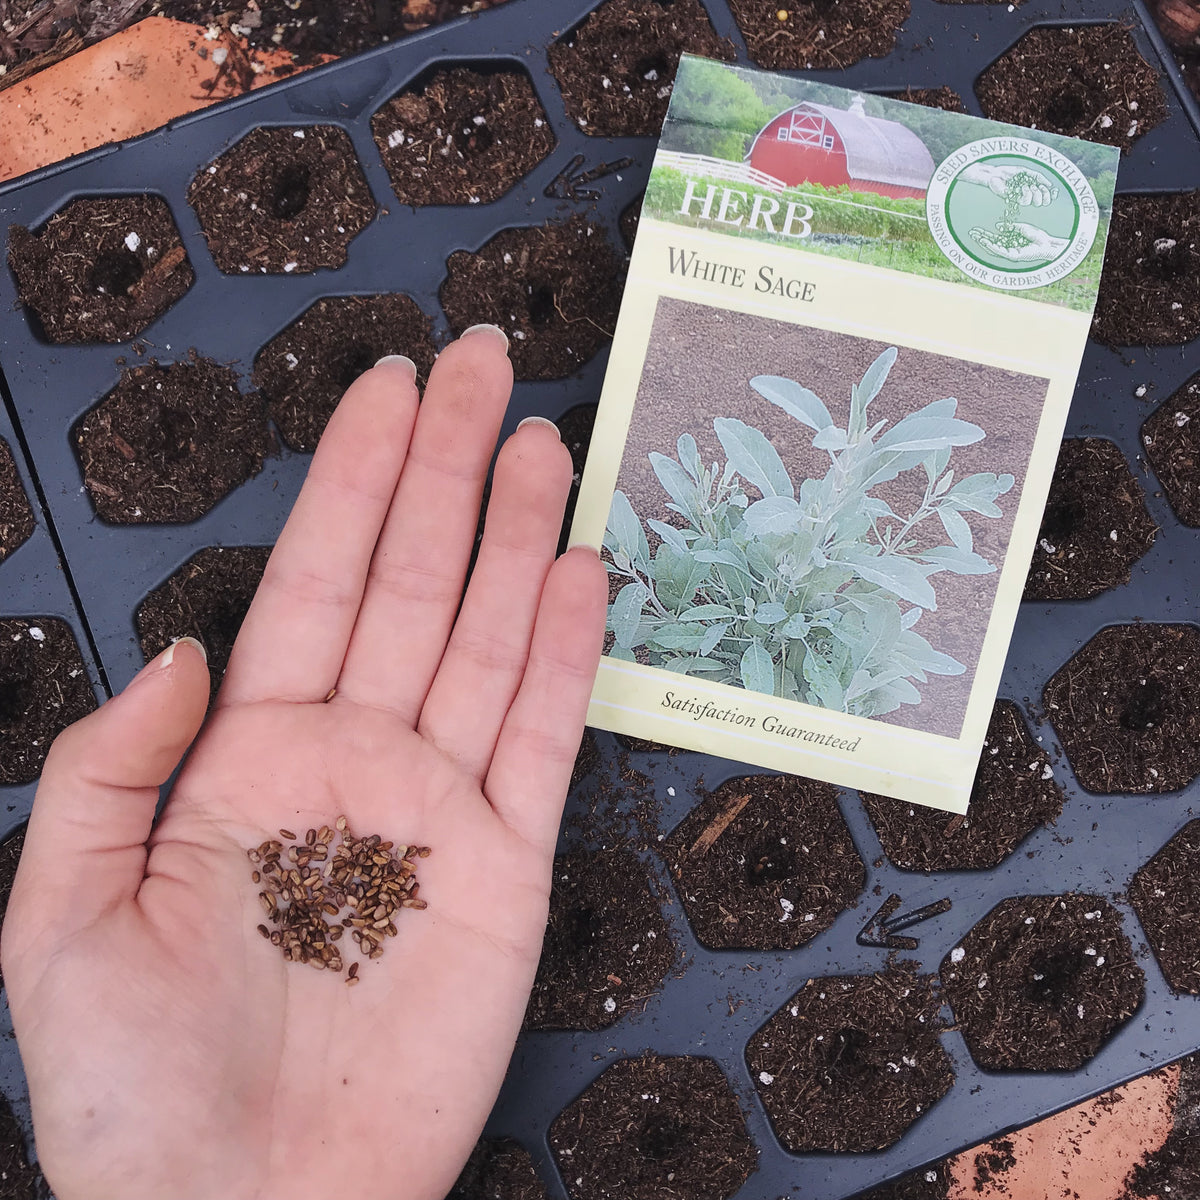 Complete White Sage Growing Guide